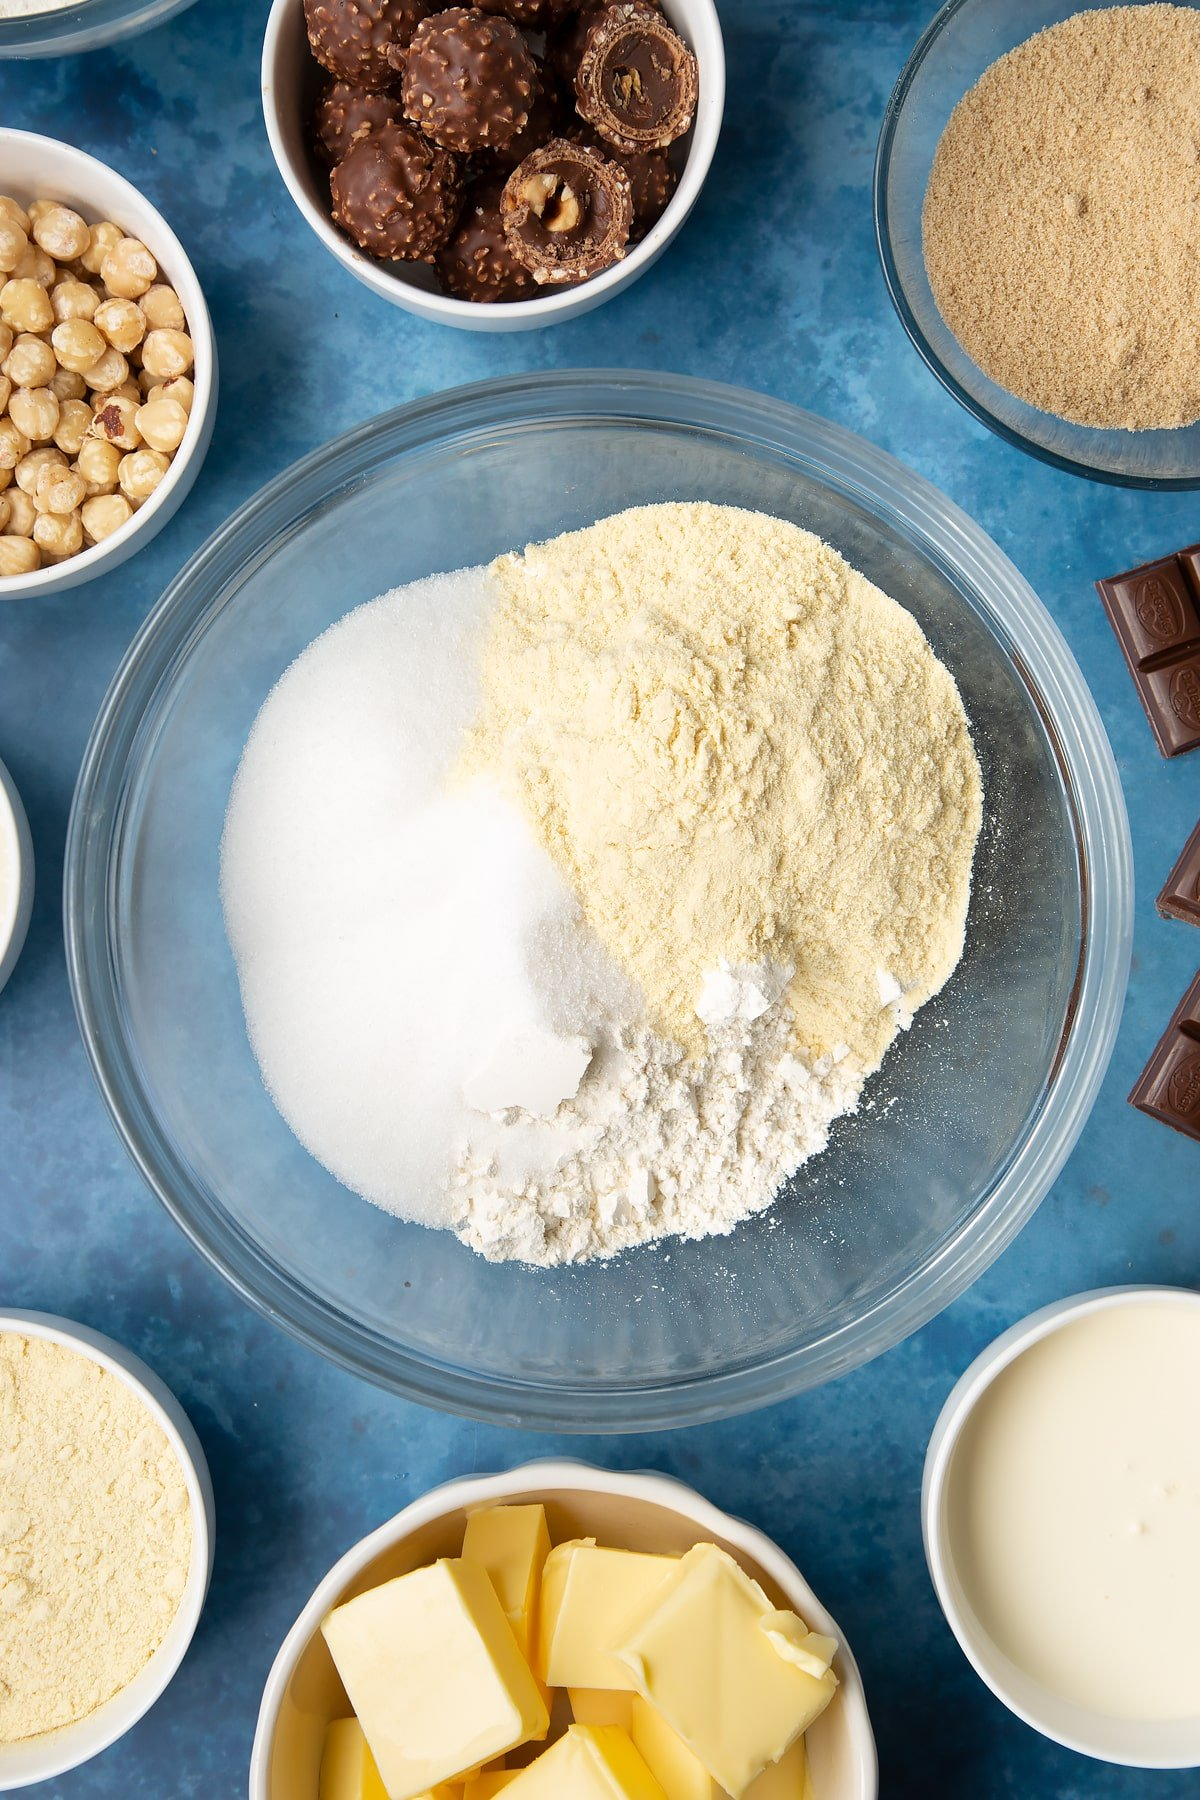 Flour, sugar and semolina in a glass mixing bowl. Ingredients to make a Ferrero Rocher slice surround the bowl.